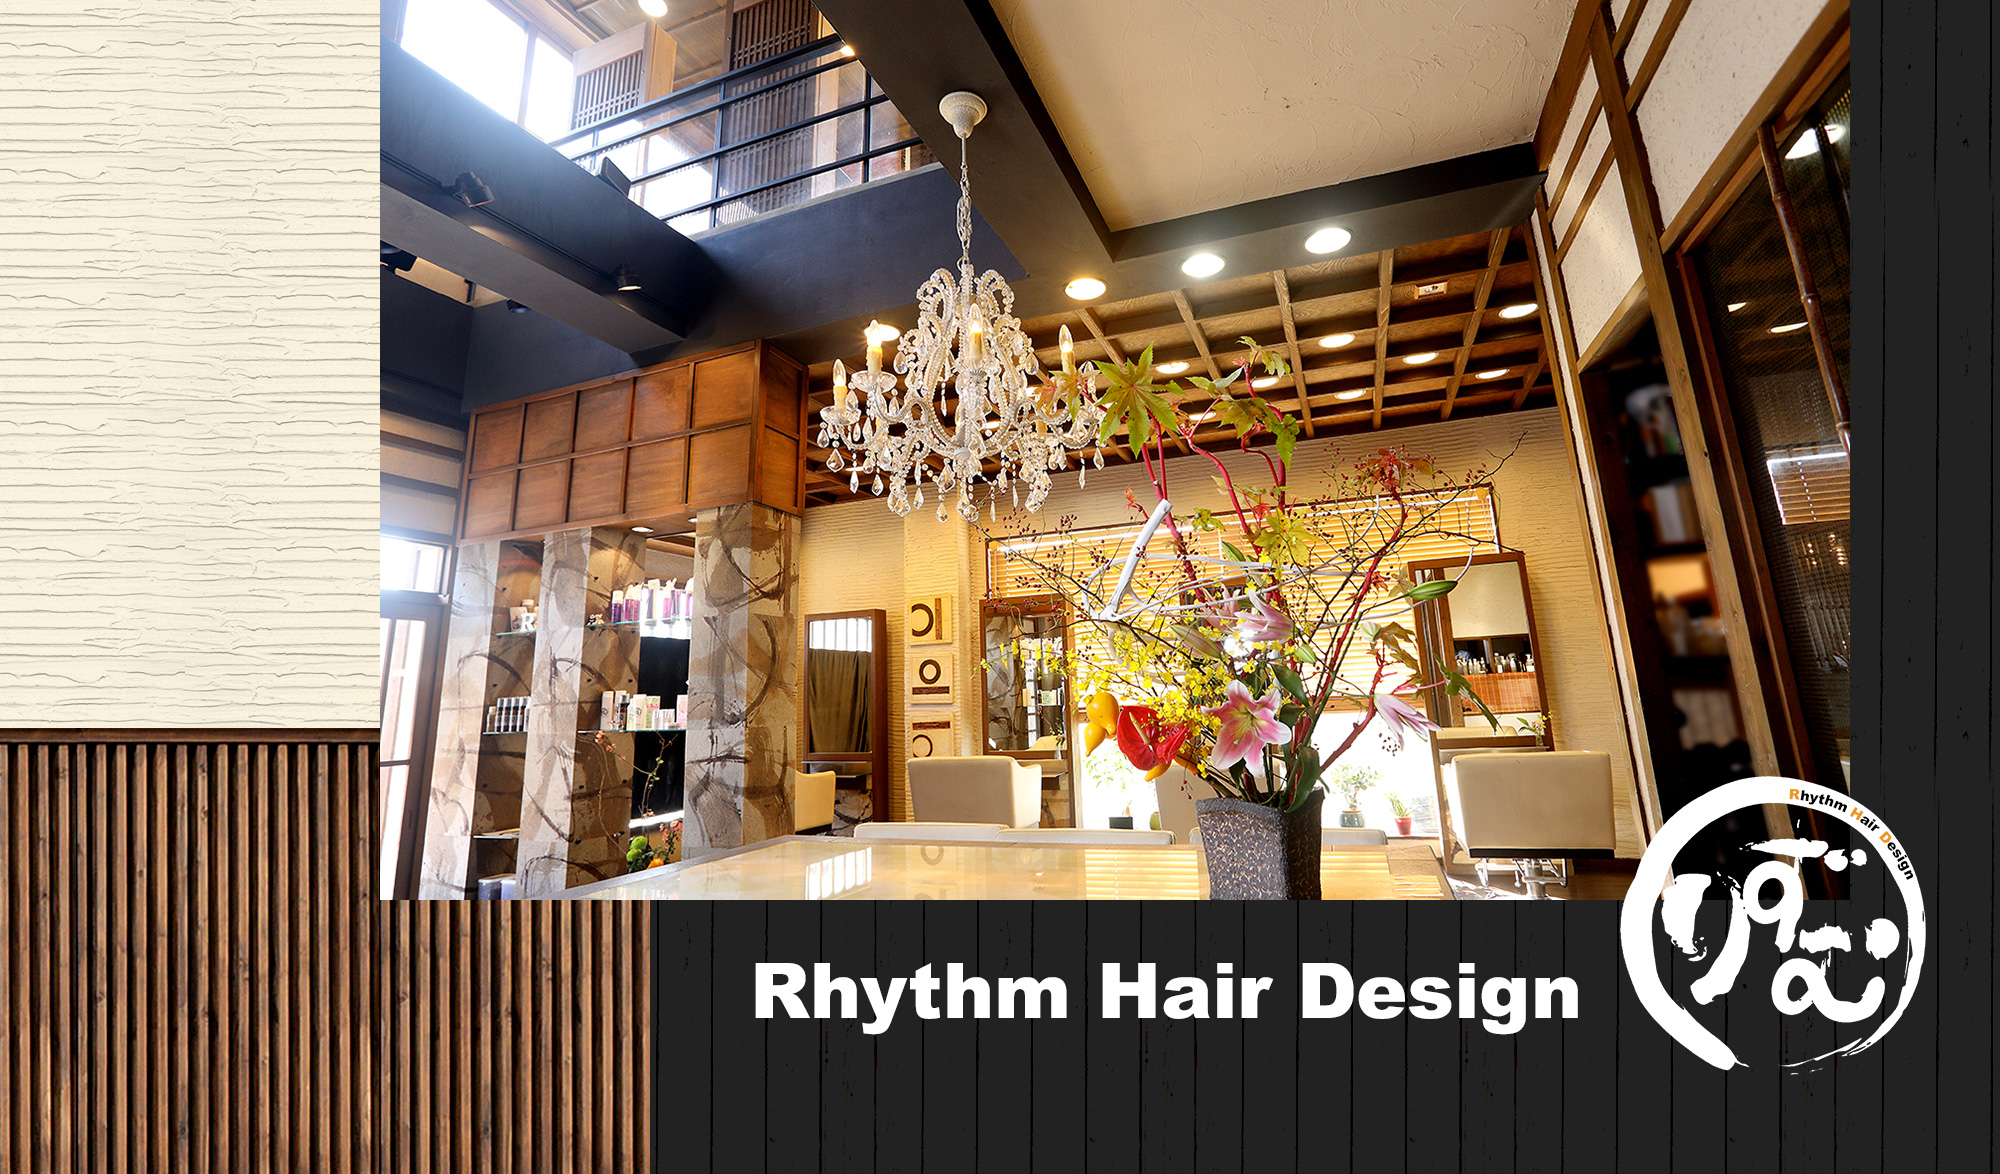 Rhythm Hair Design